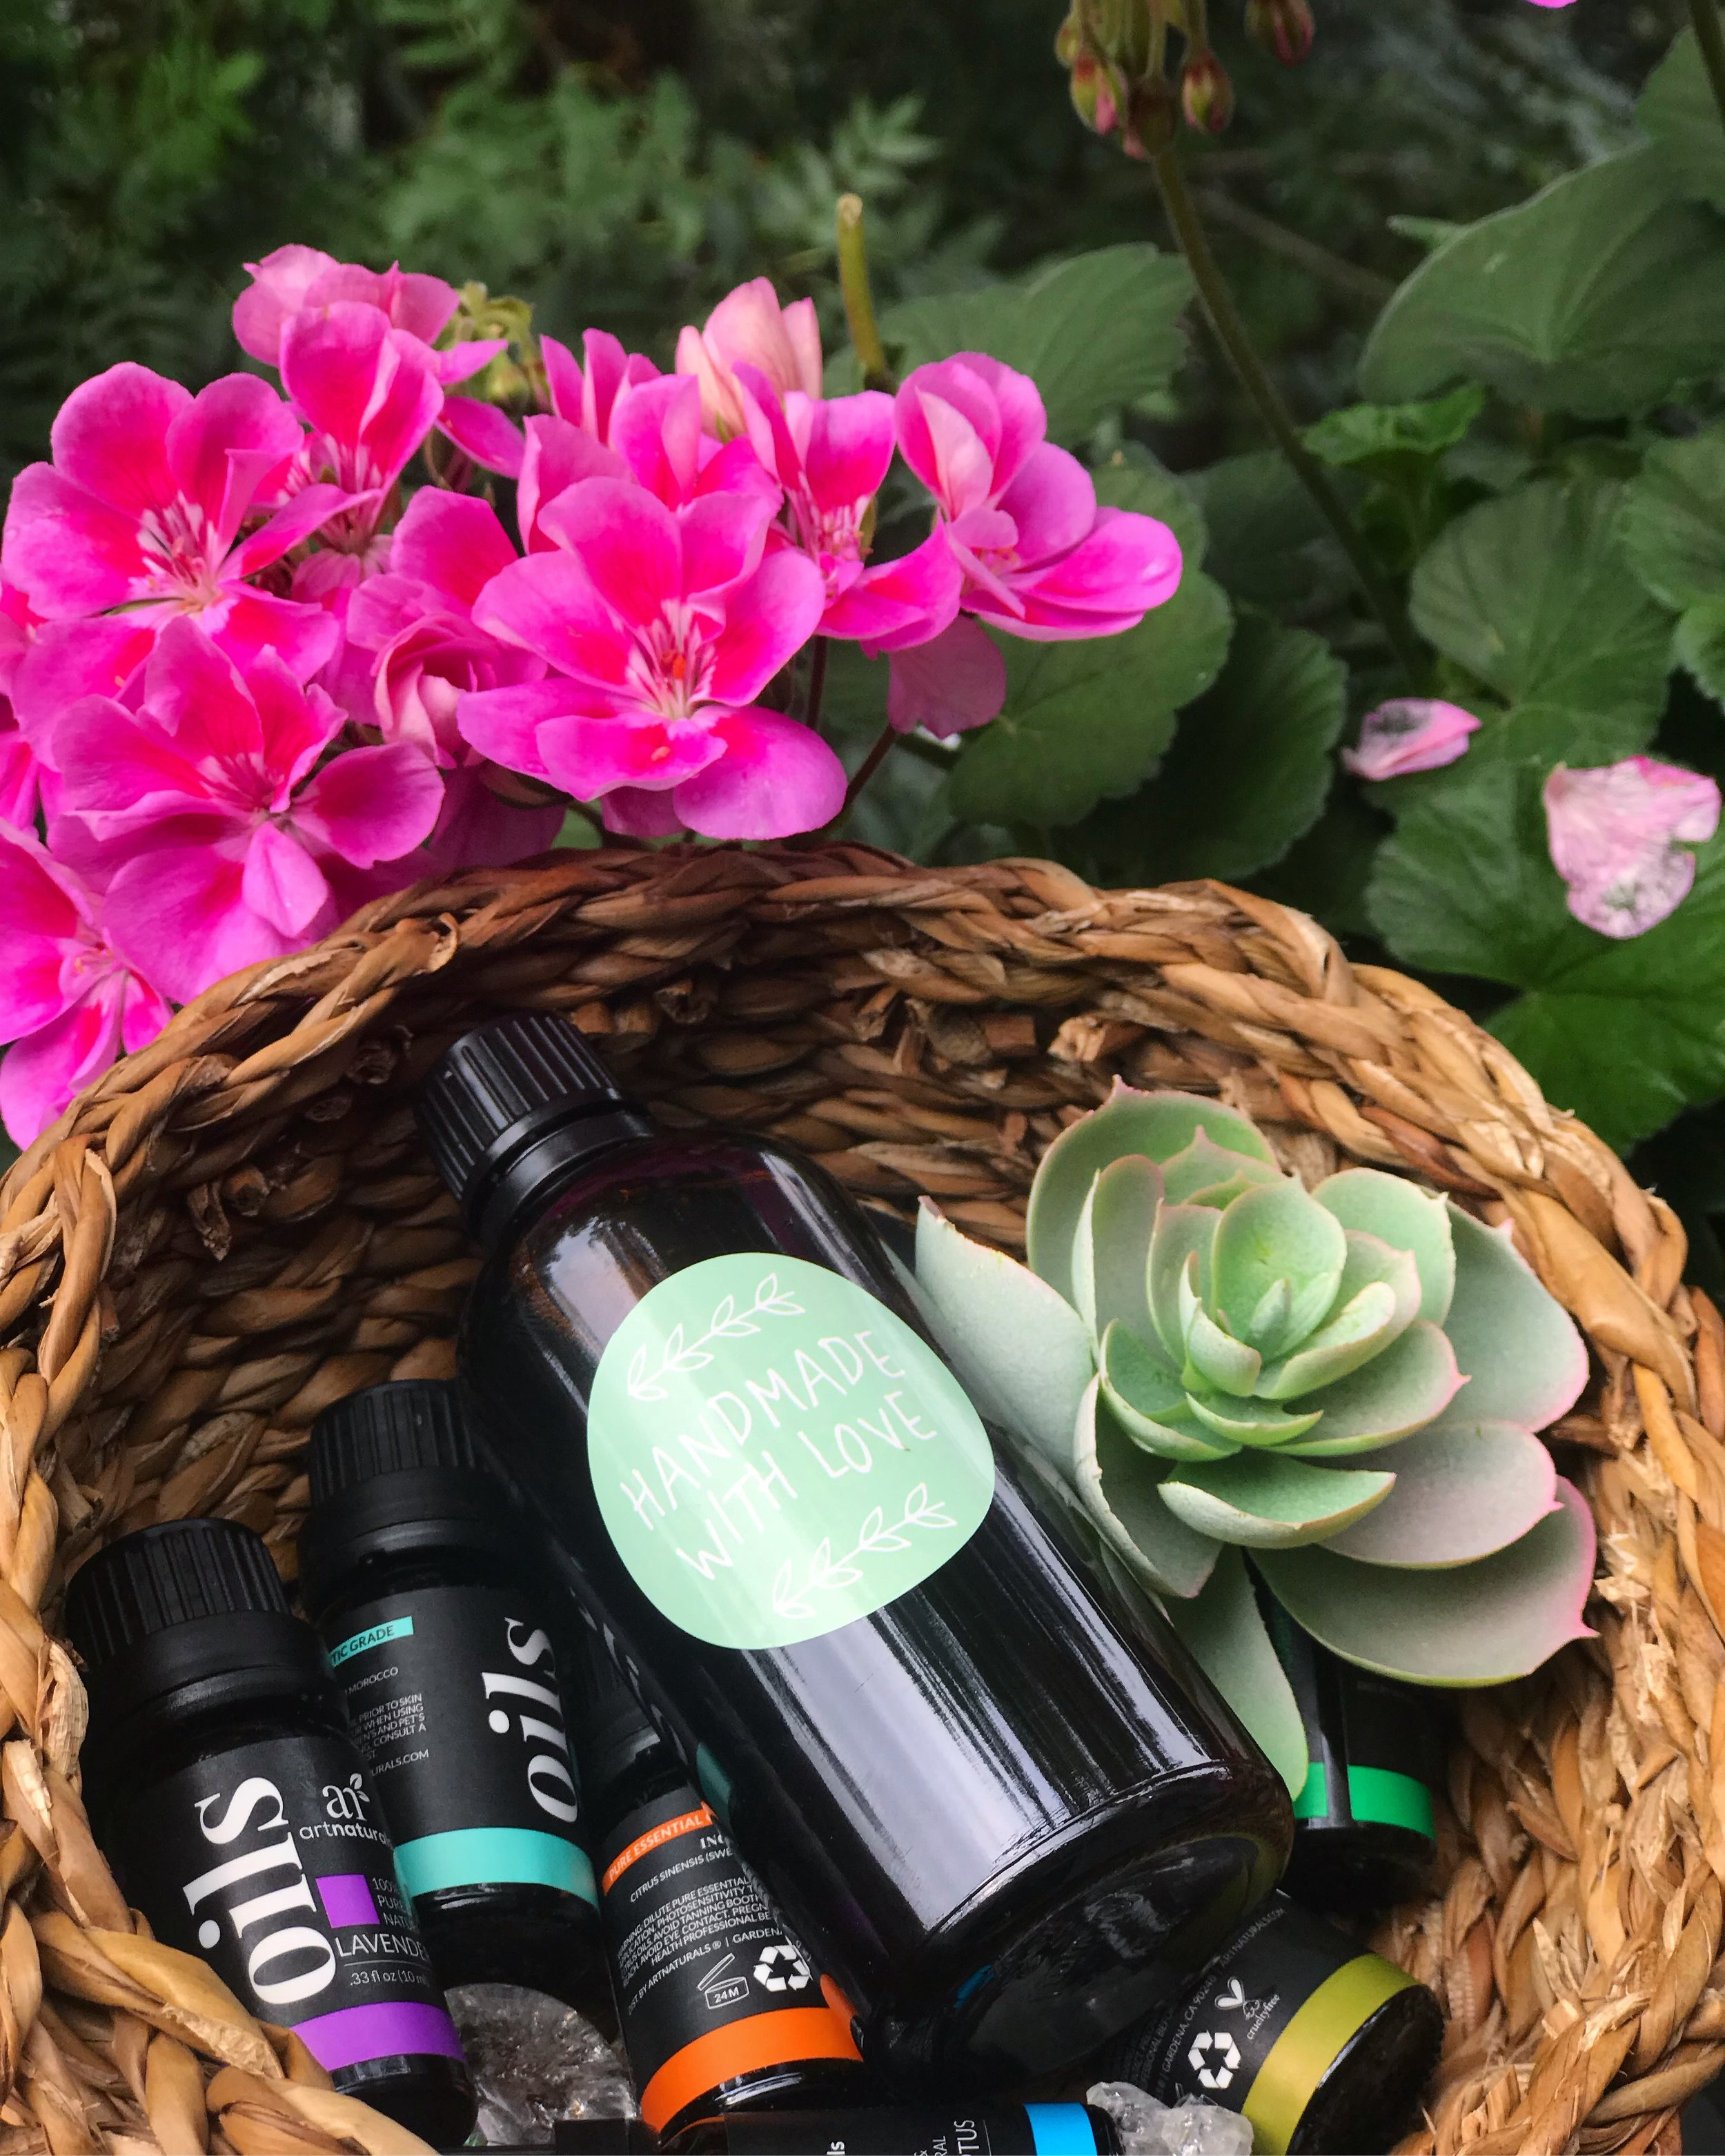 My lovely basket of essential oils which I love to make homemade beauty products with!